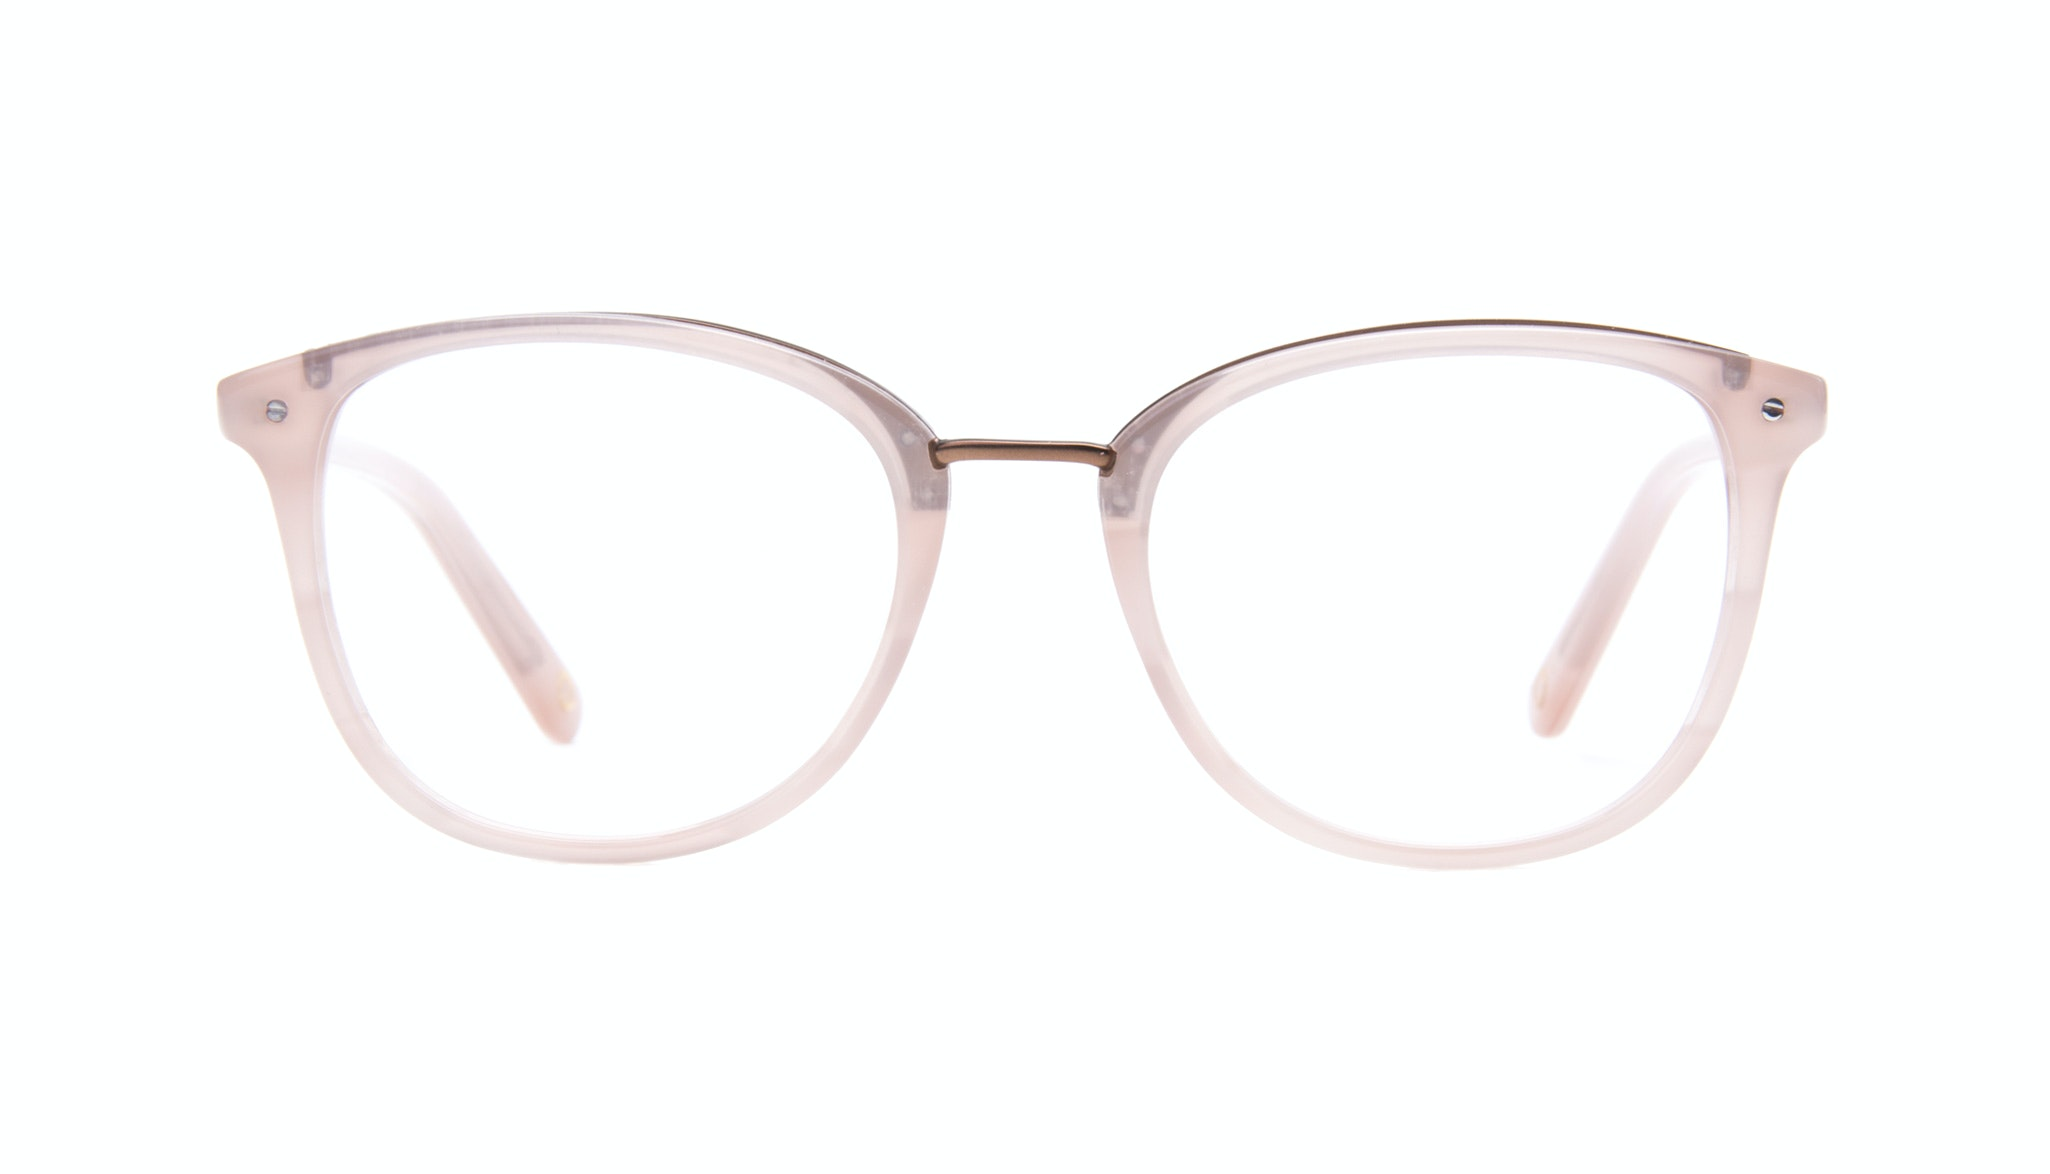 Affordable Fashion Glasses Square Round Eyeglasses Women Ella Blush